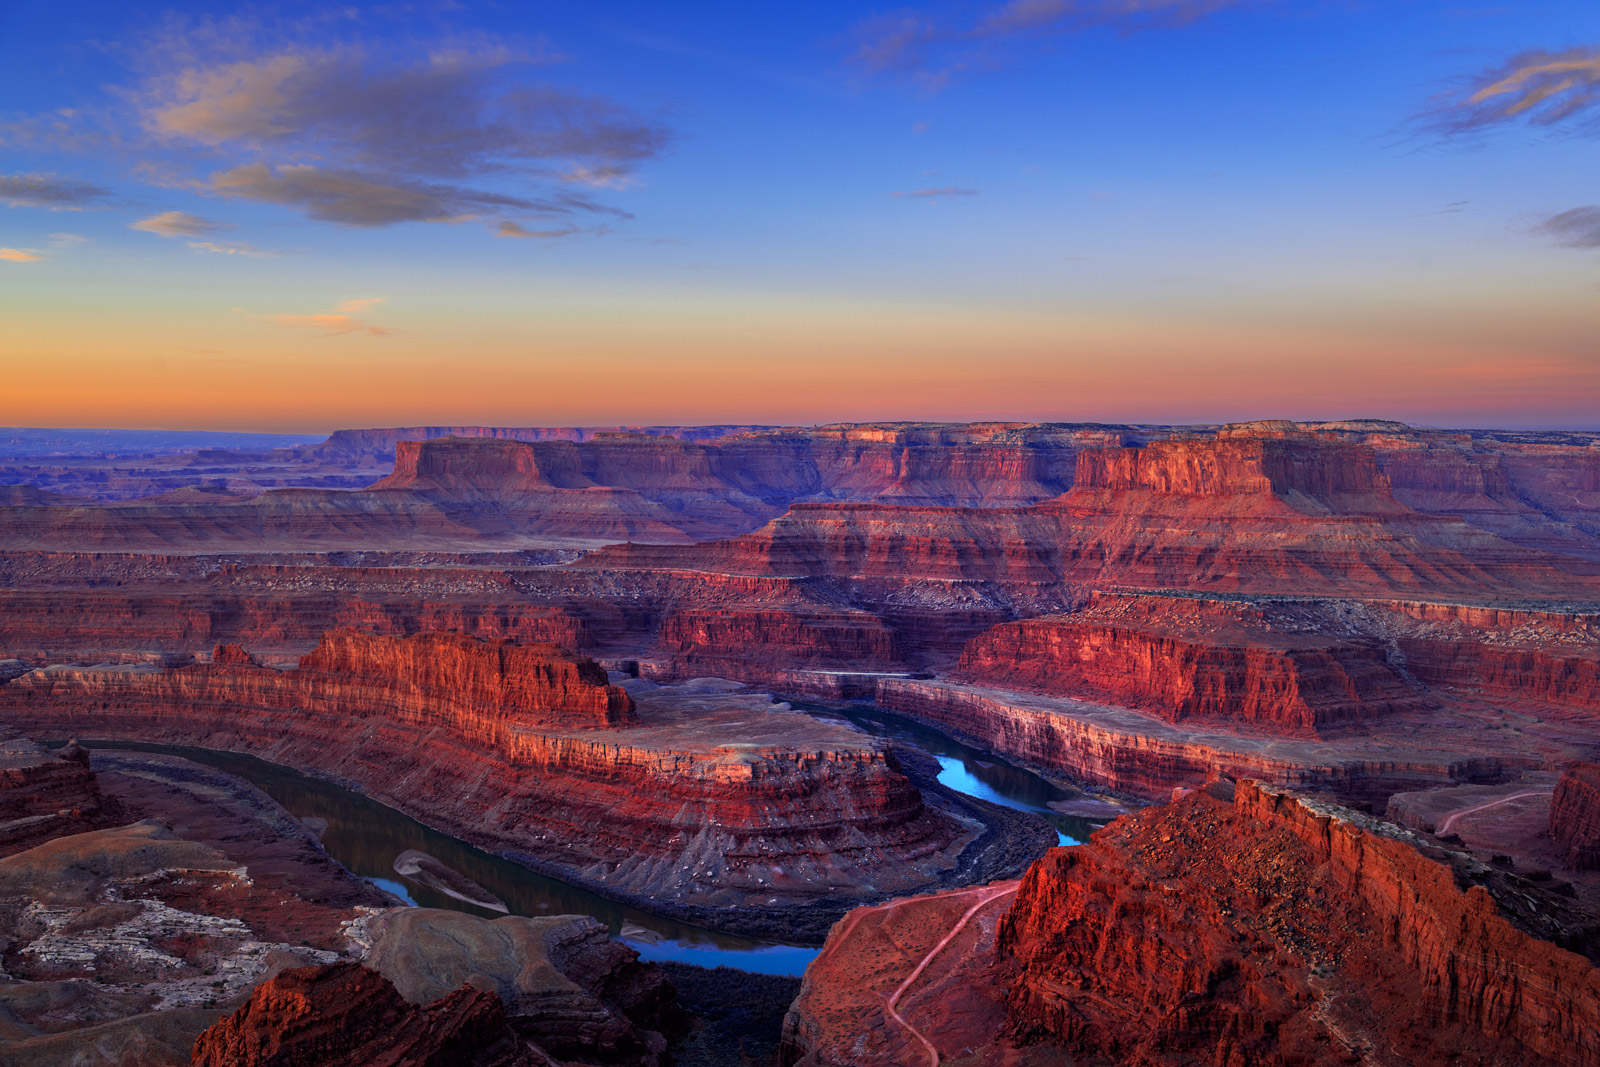 A Limited Edition, Fine Art photograph of Dead Horse Point State Park with the light of sunrise lighting up the red rock canyons...